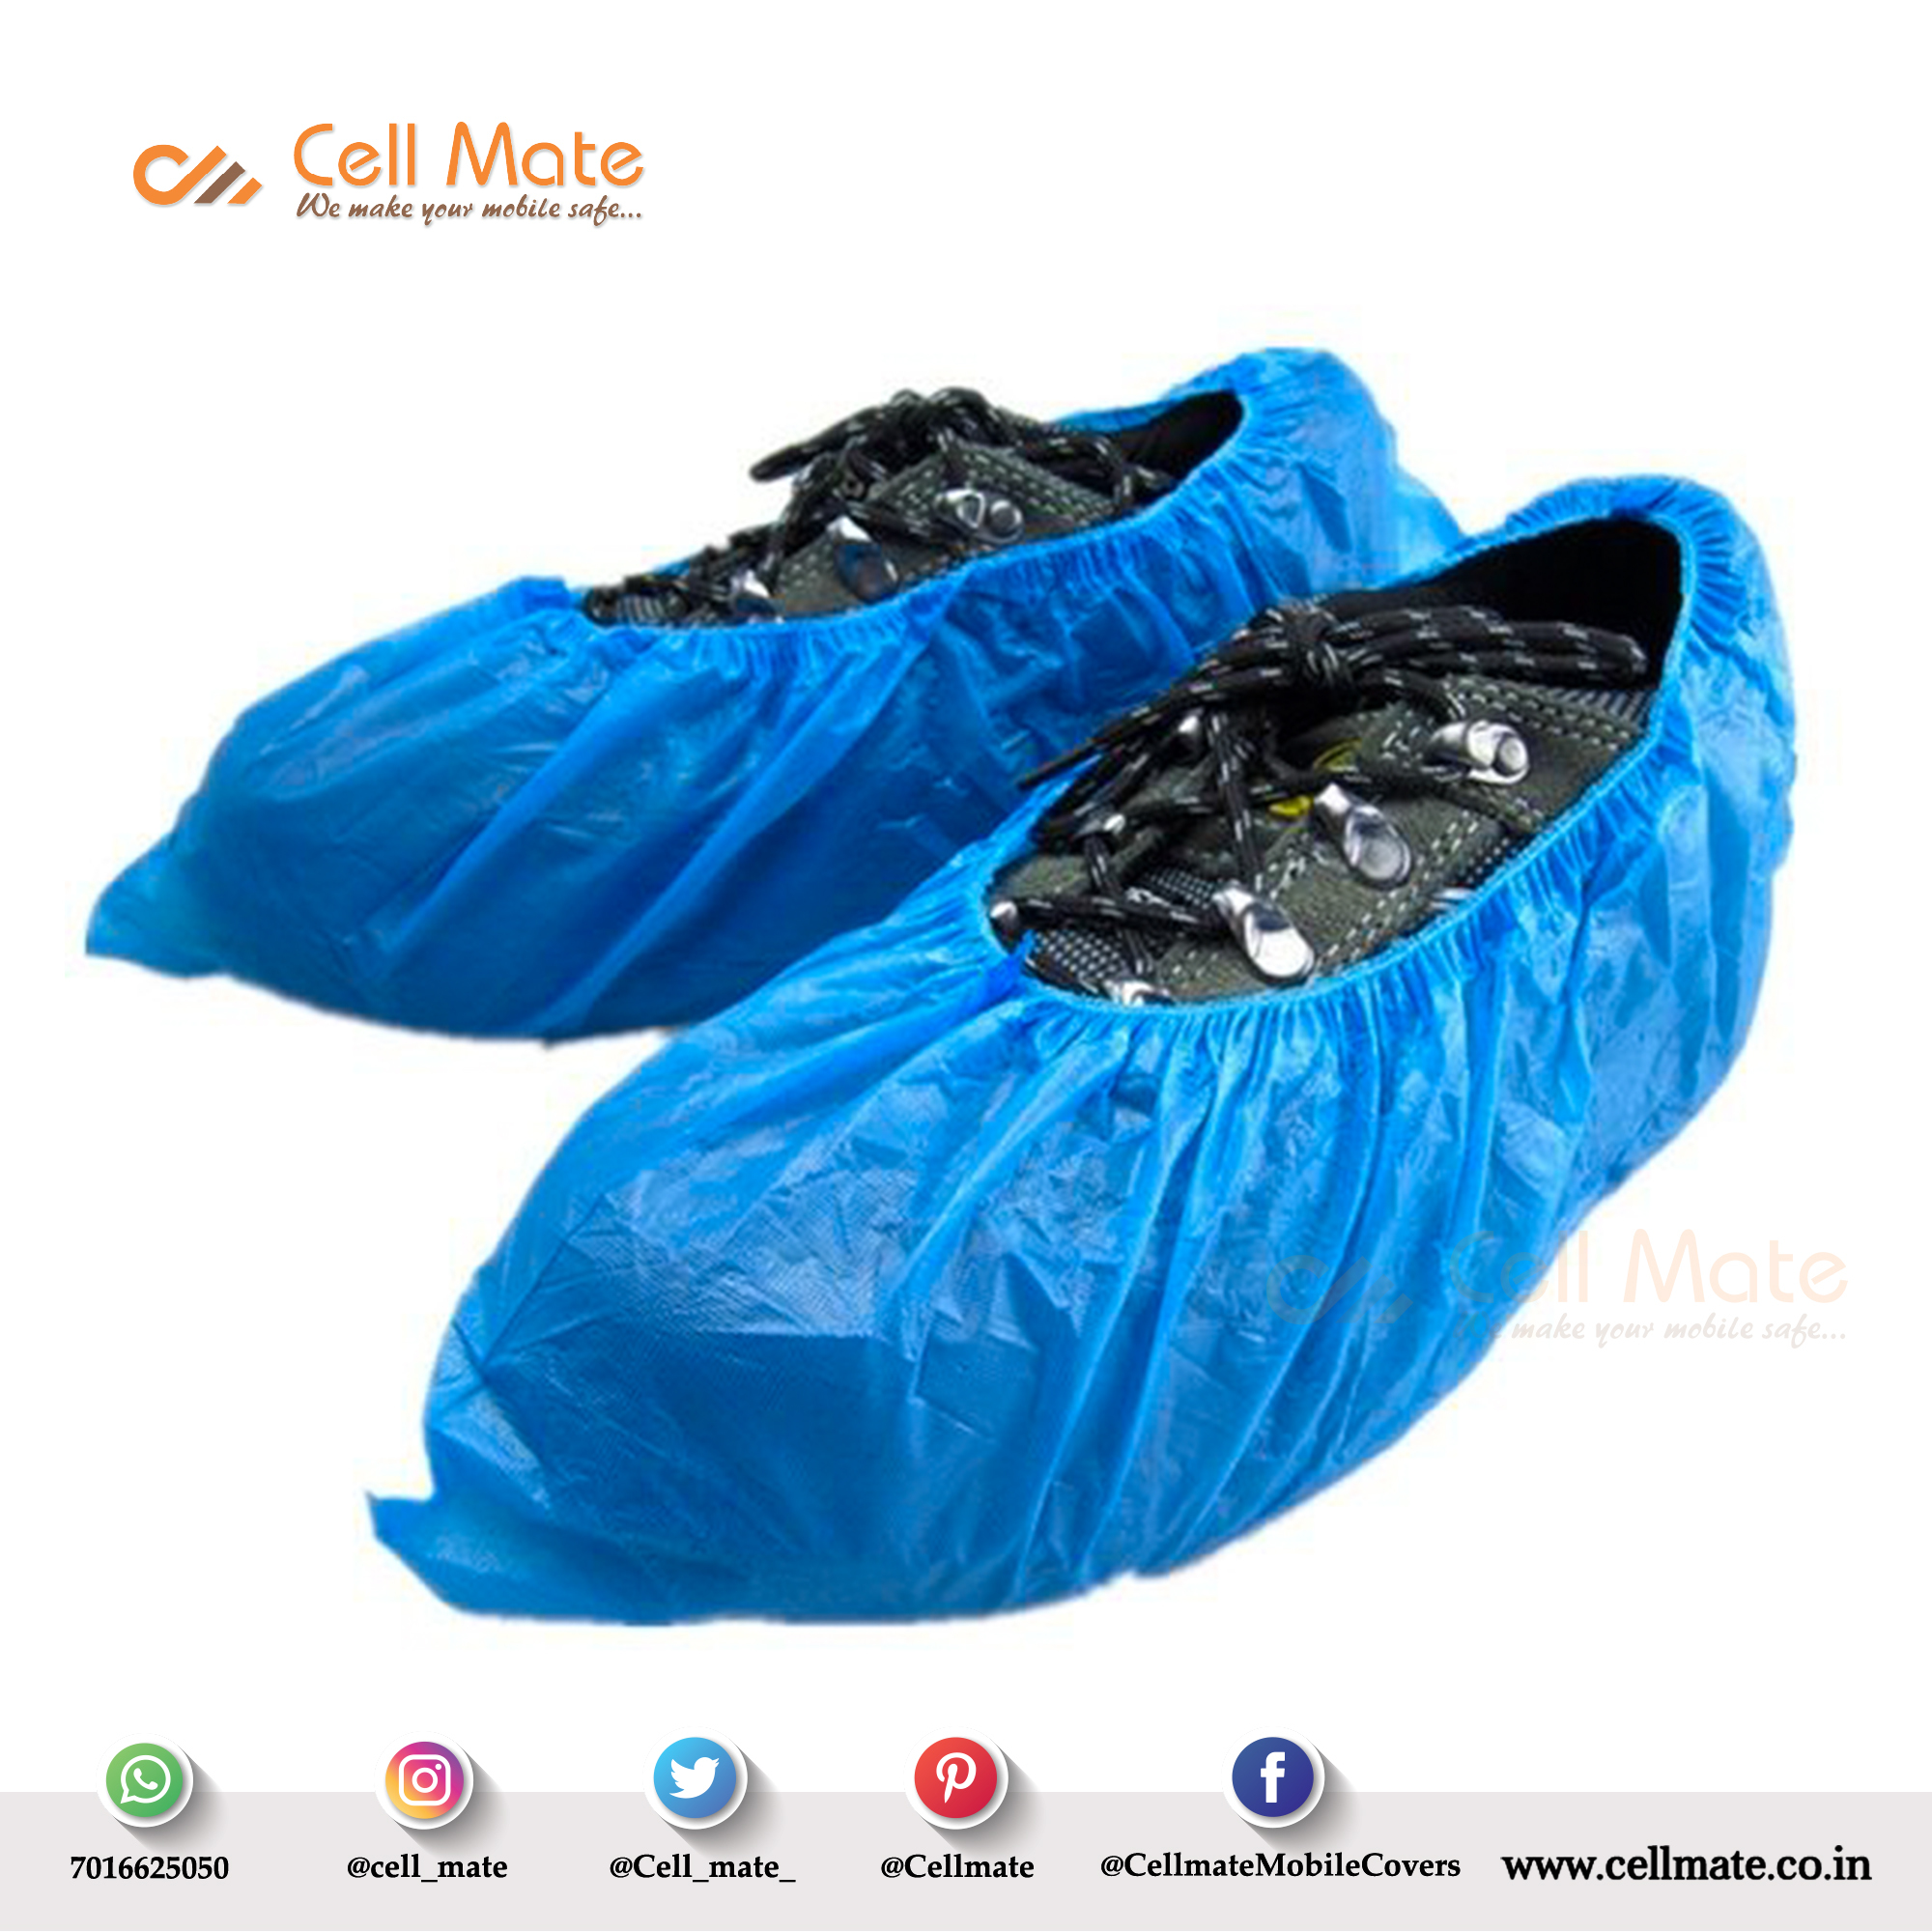 Cellmate Personal Protection Equipment Kit (Ppe Kit)